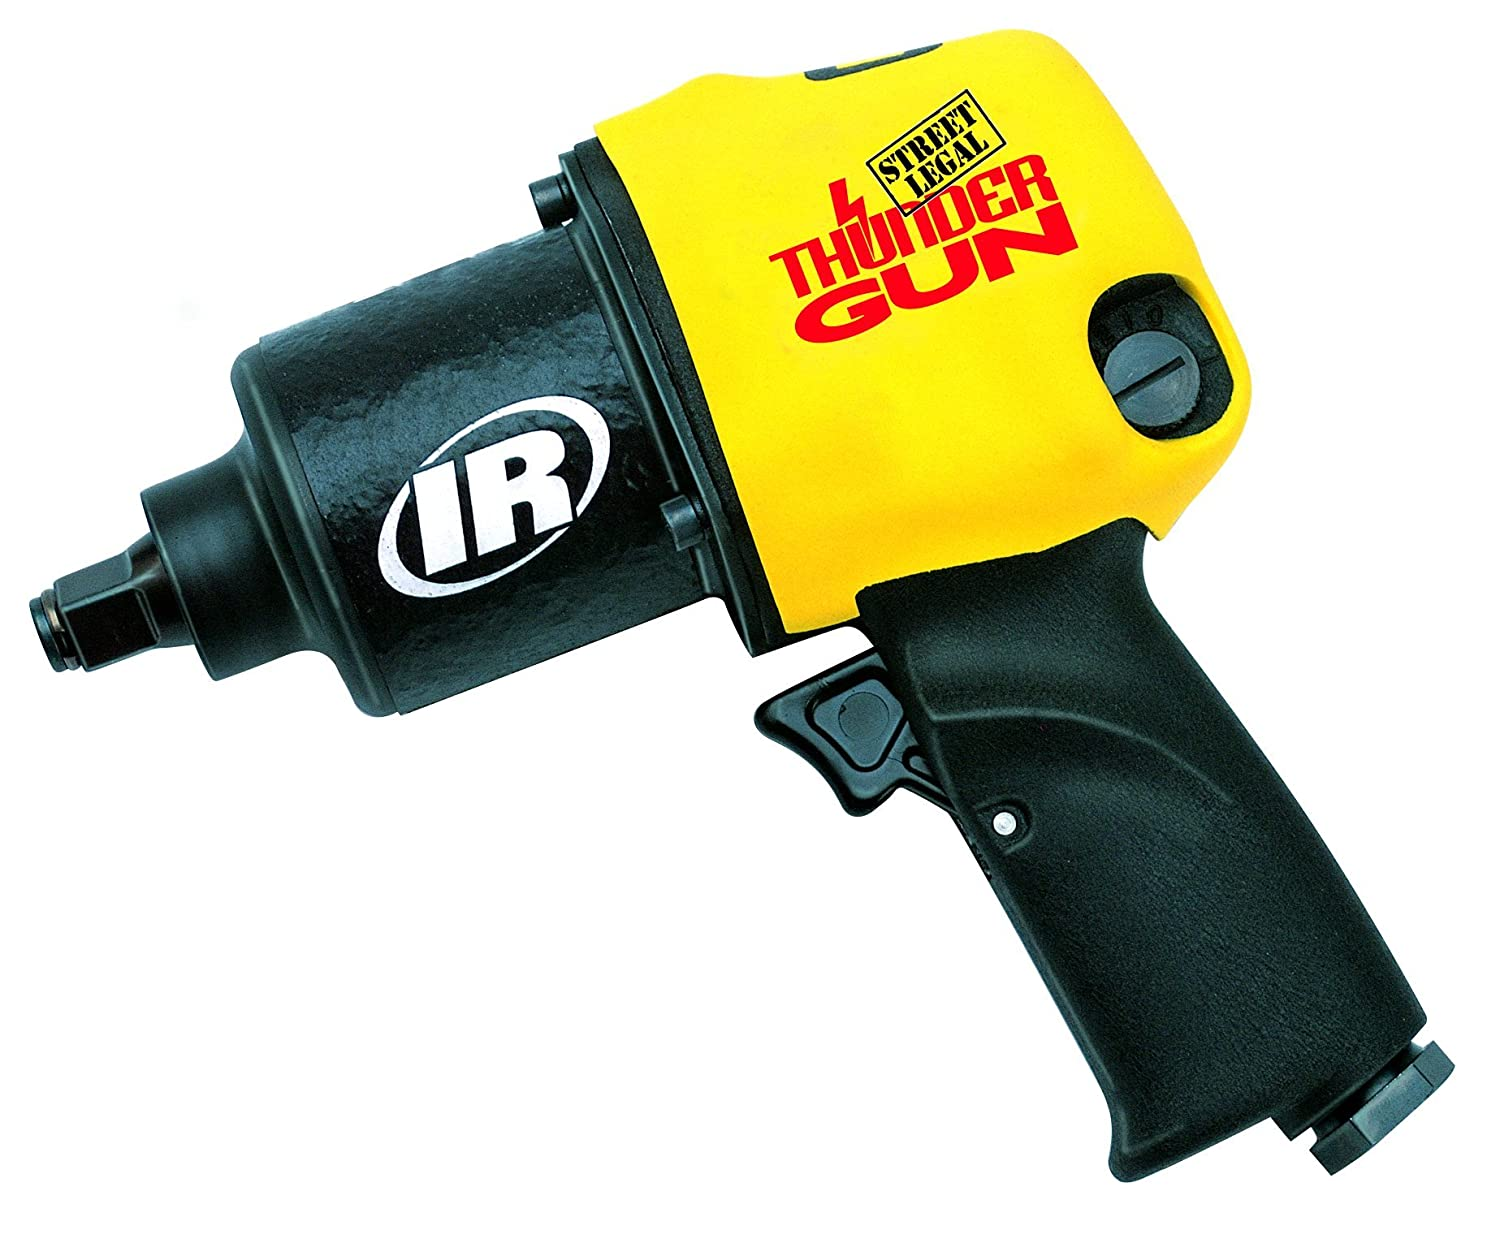 Ingersoll Rand 232TGSL Air Impact Wrench Thunder Gun